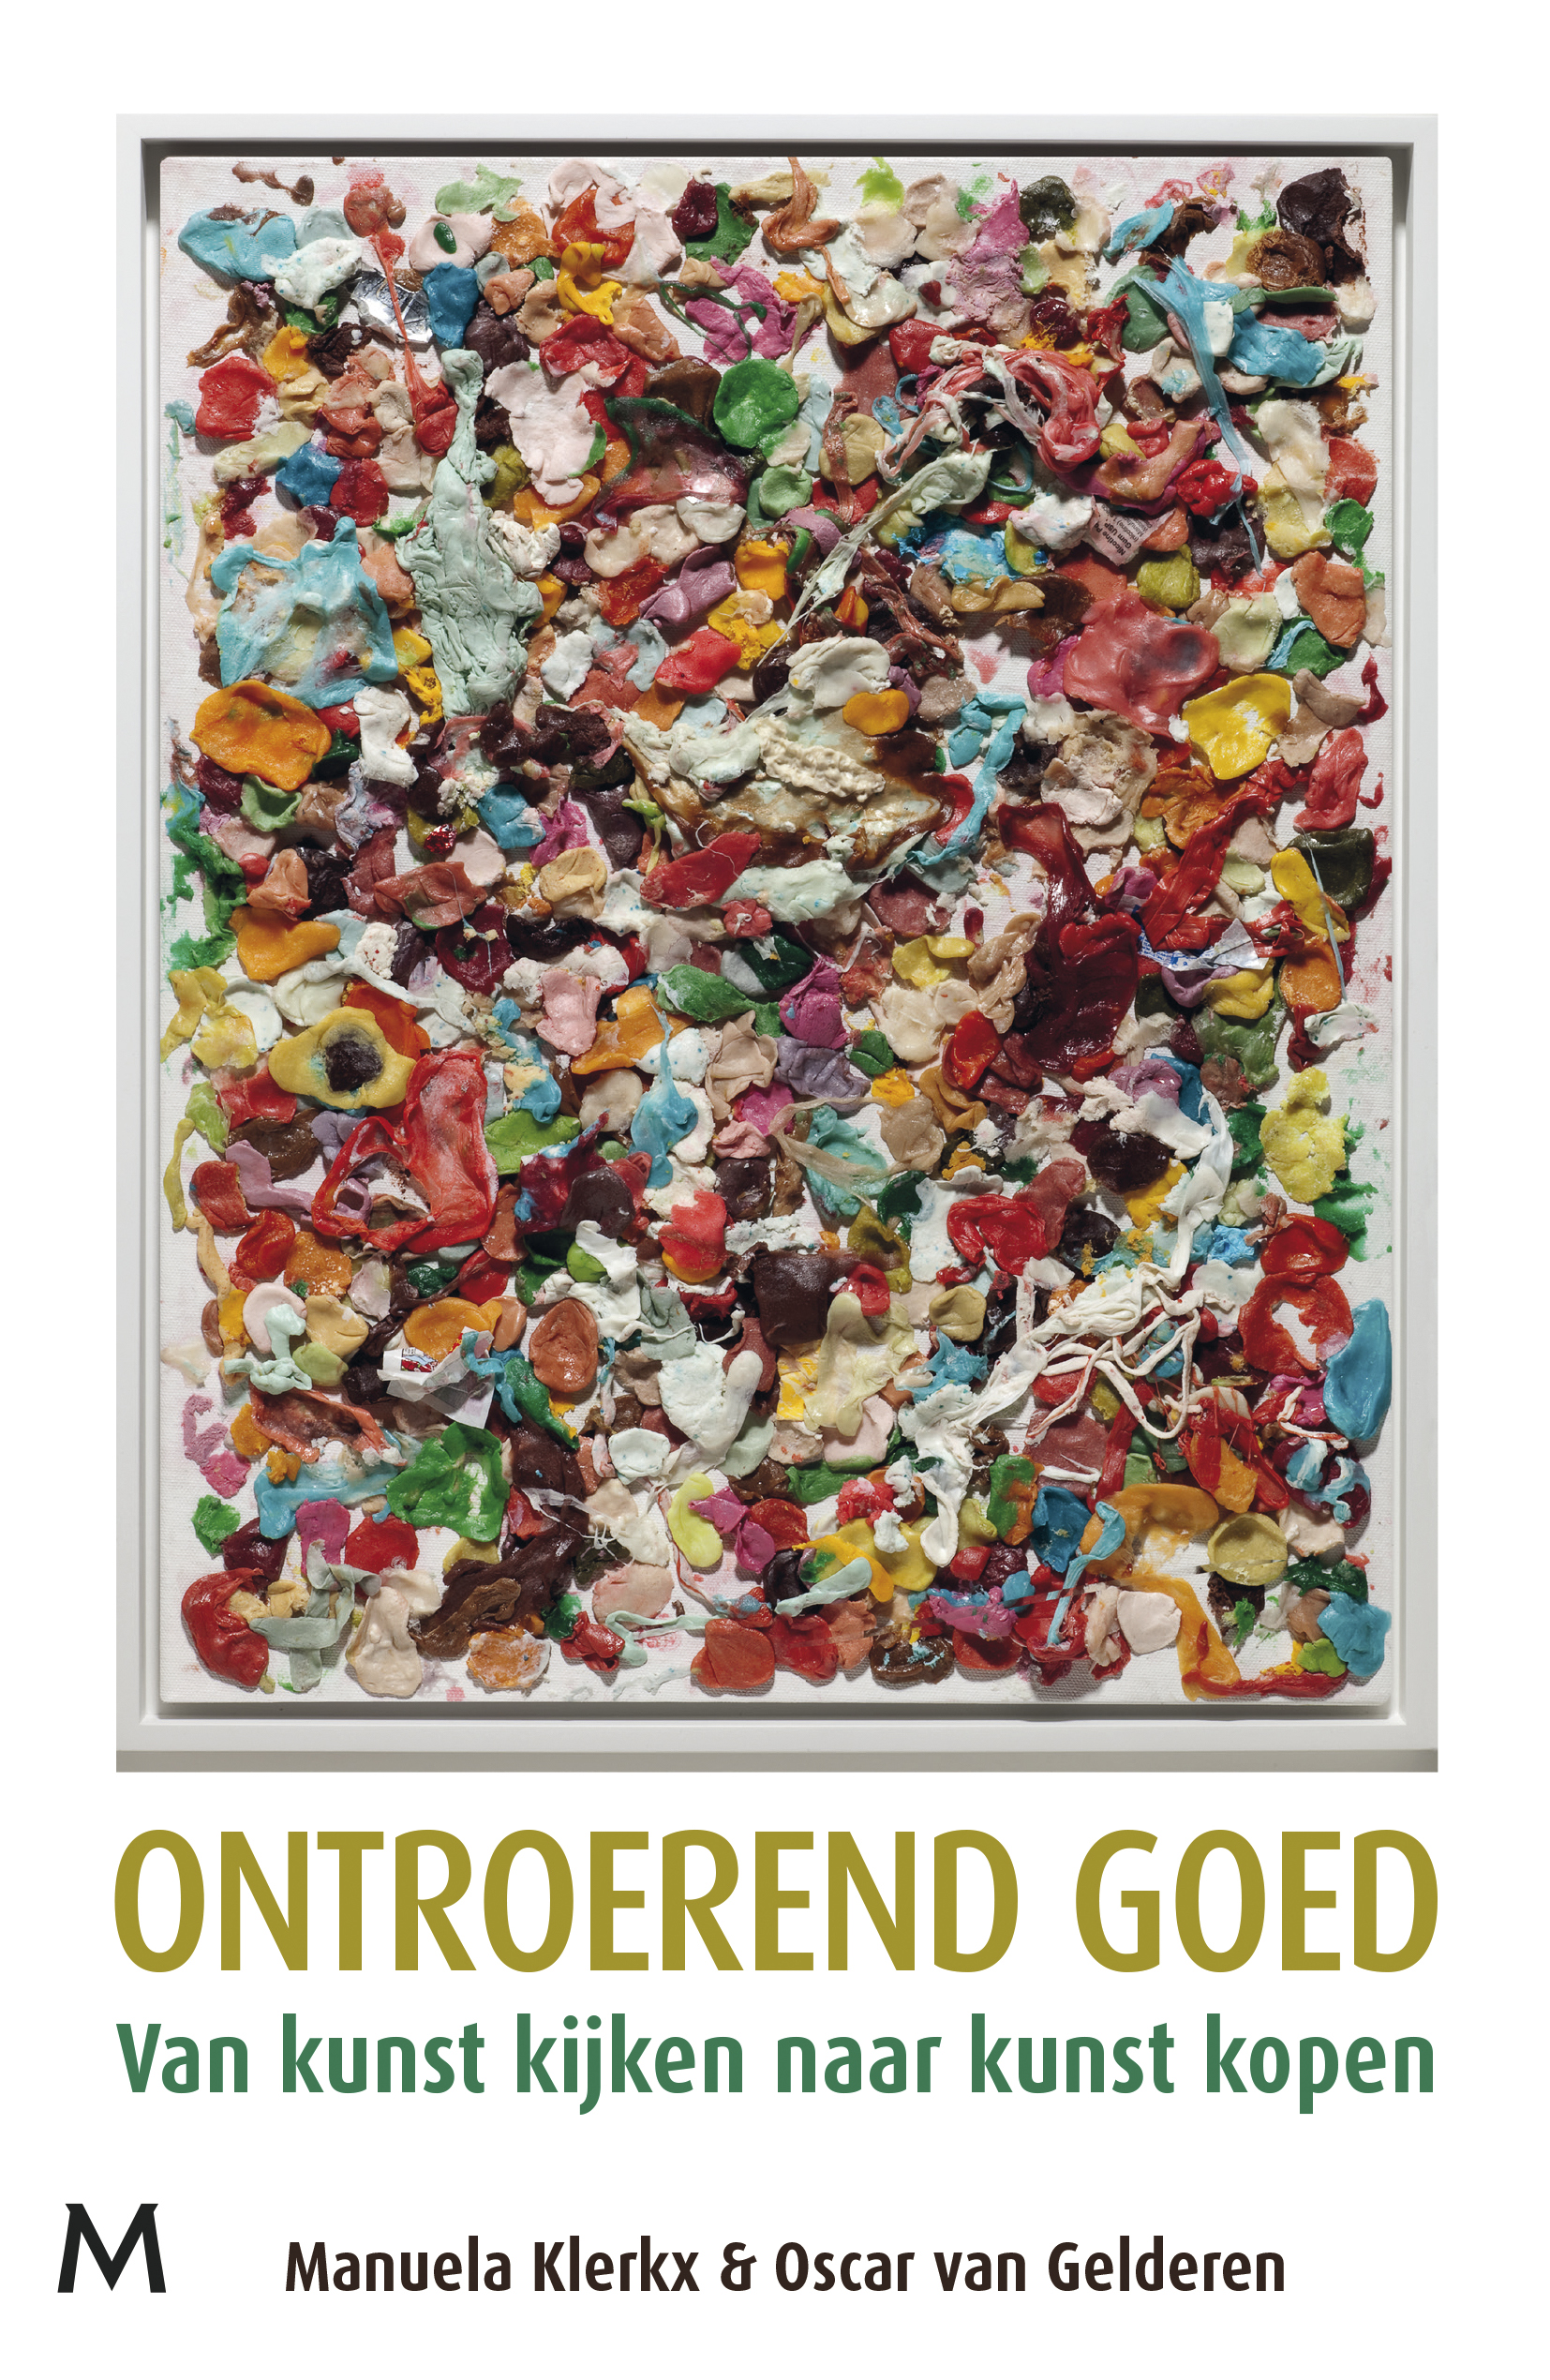 Cover: Bubblegum painting Dan Colen | To be published in February 2018 | Meulenhoff